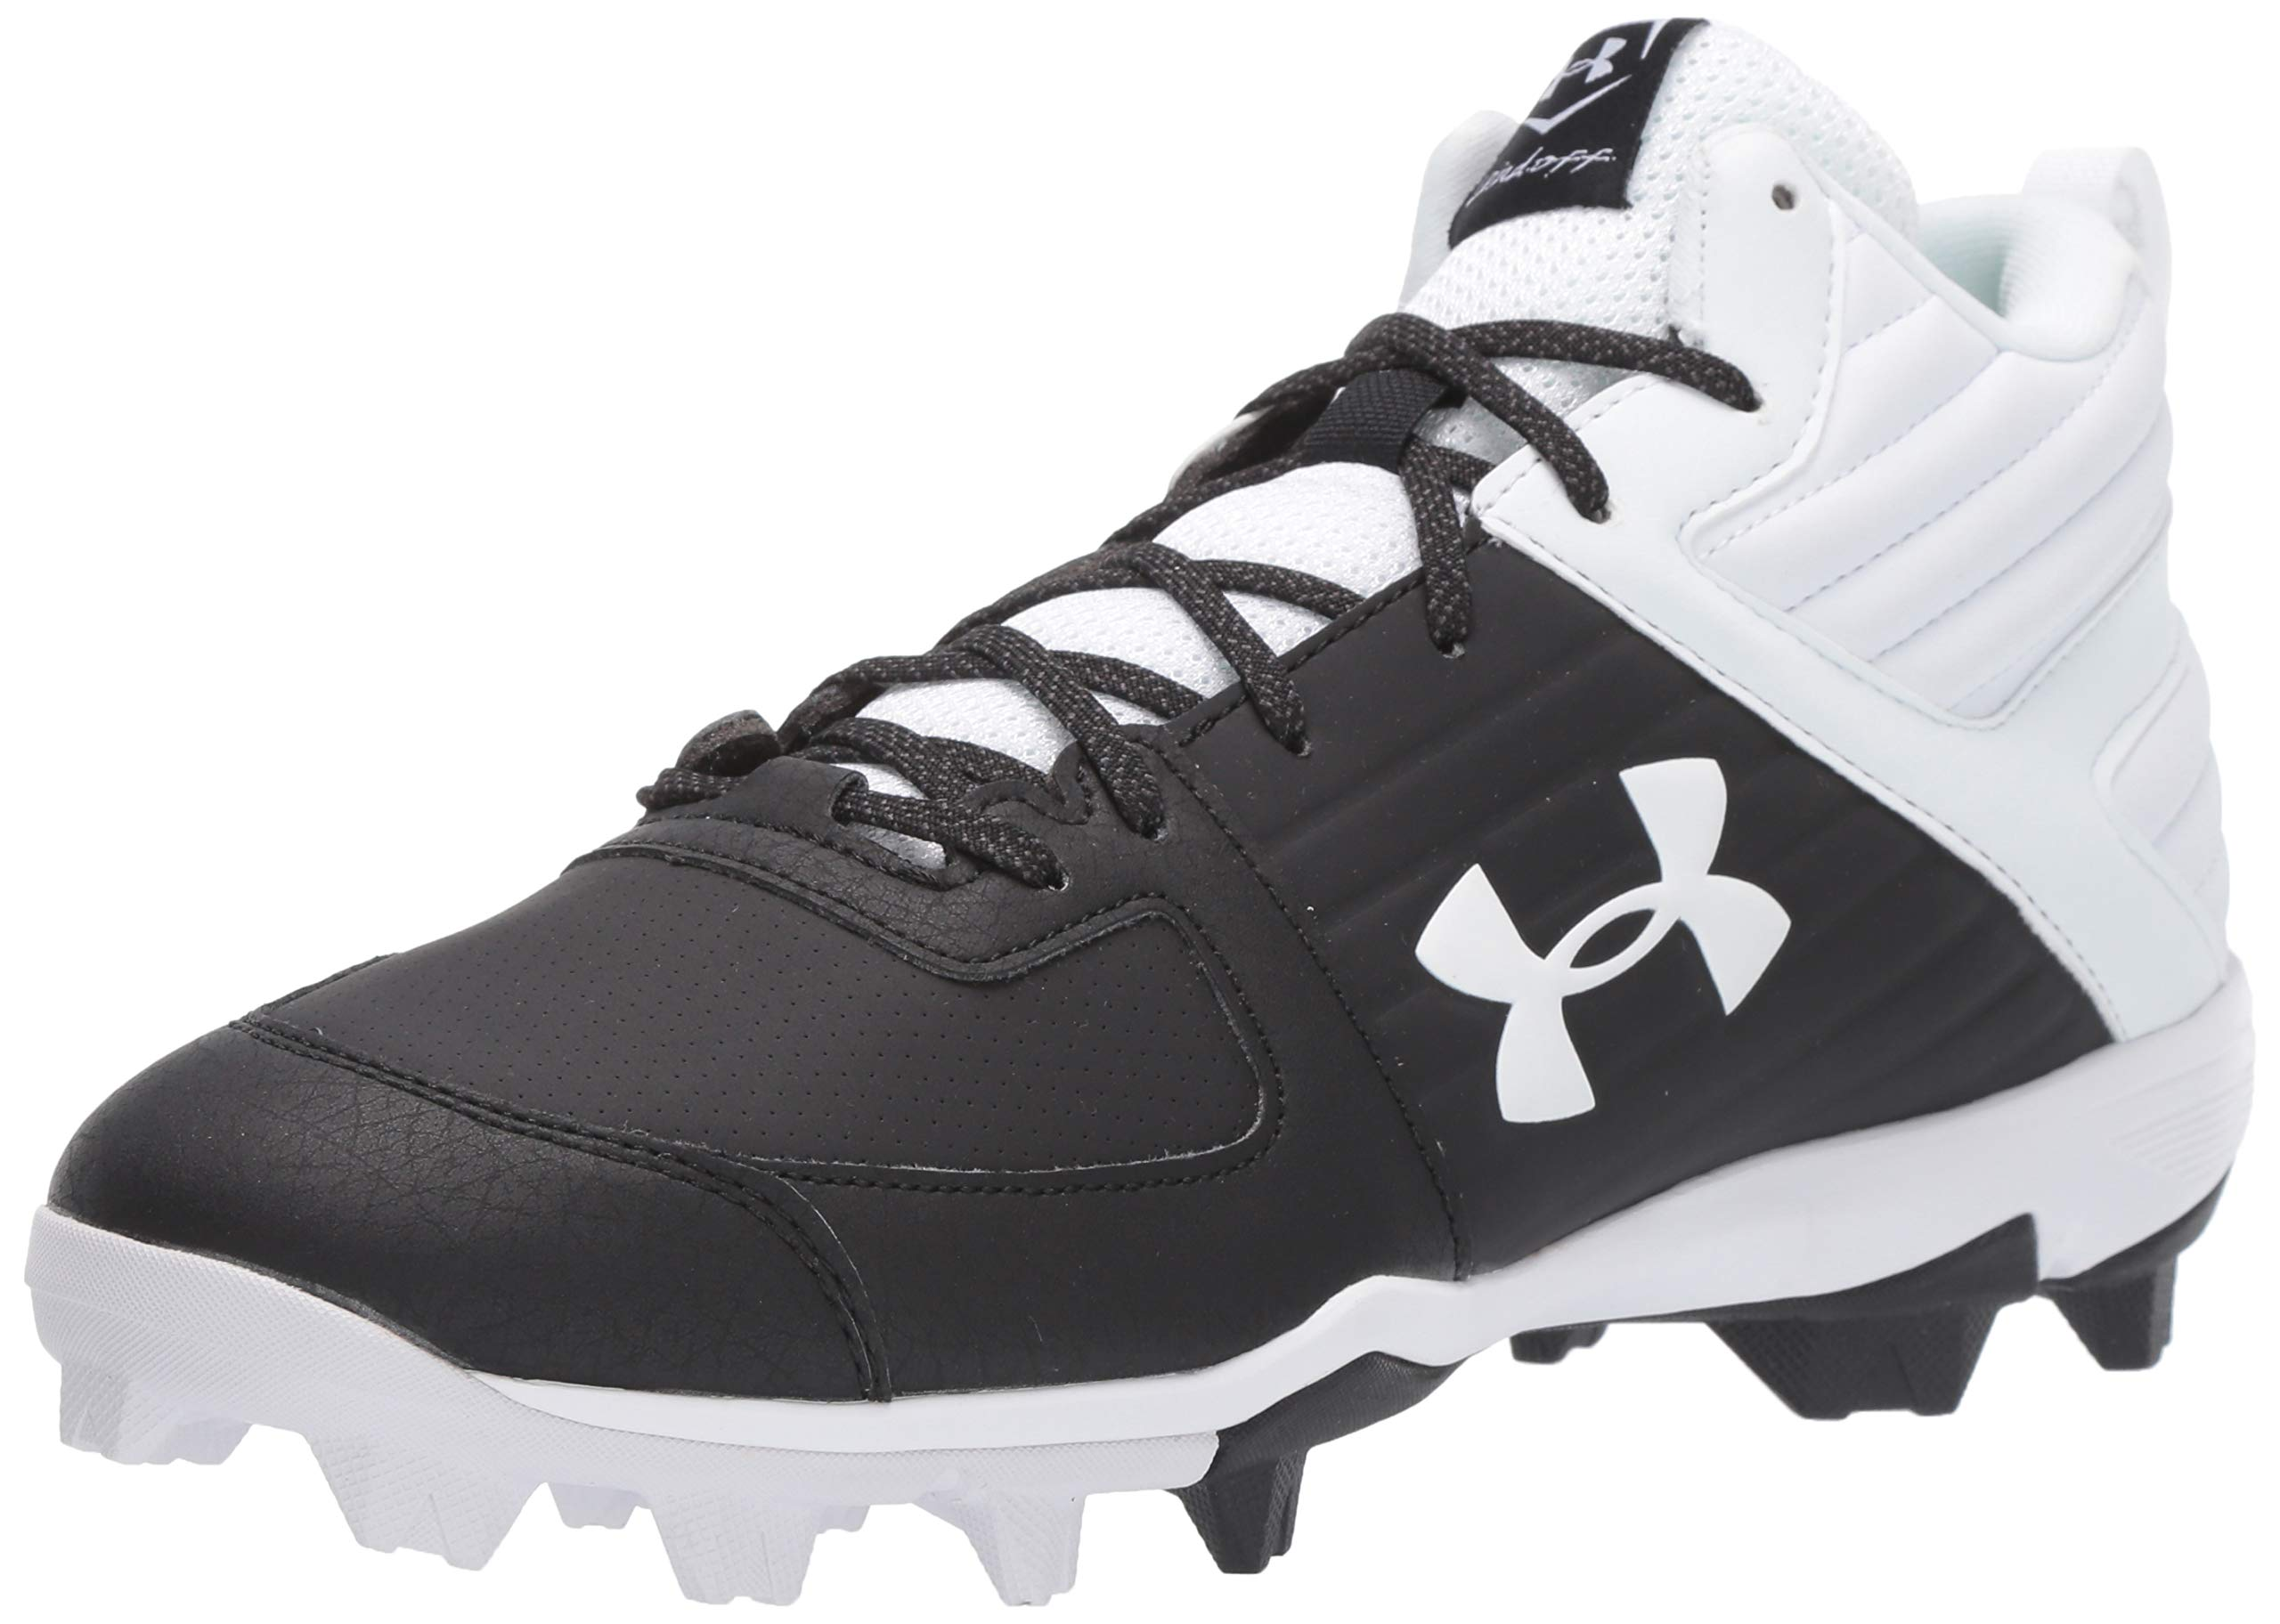 Under Armour Men's Leadoff Mid RM Baseball Shoe, Black (002)/White, 11 by Under Armour